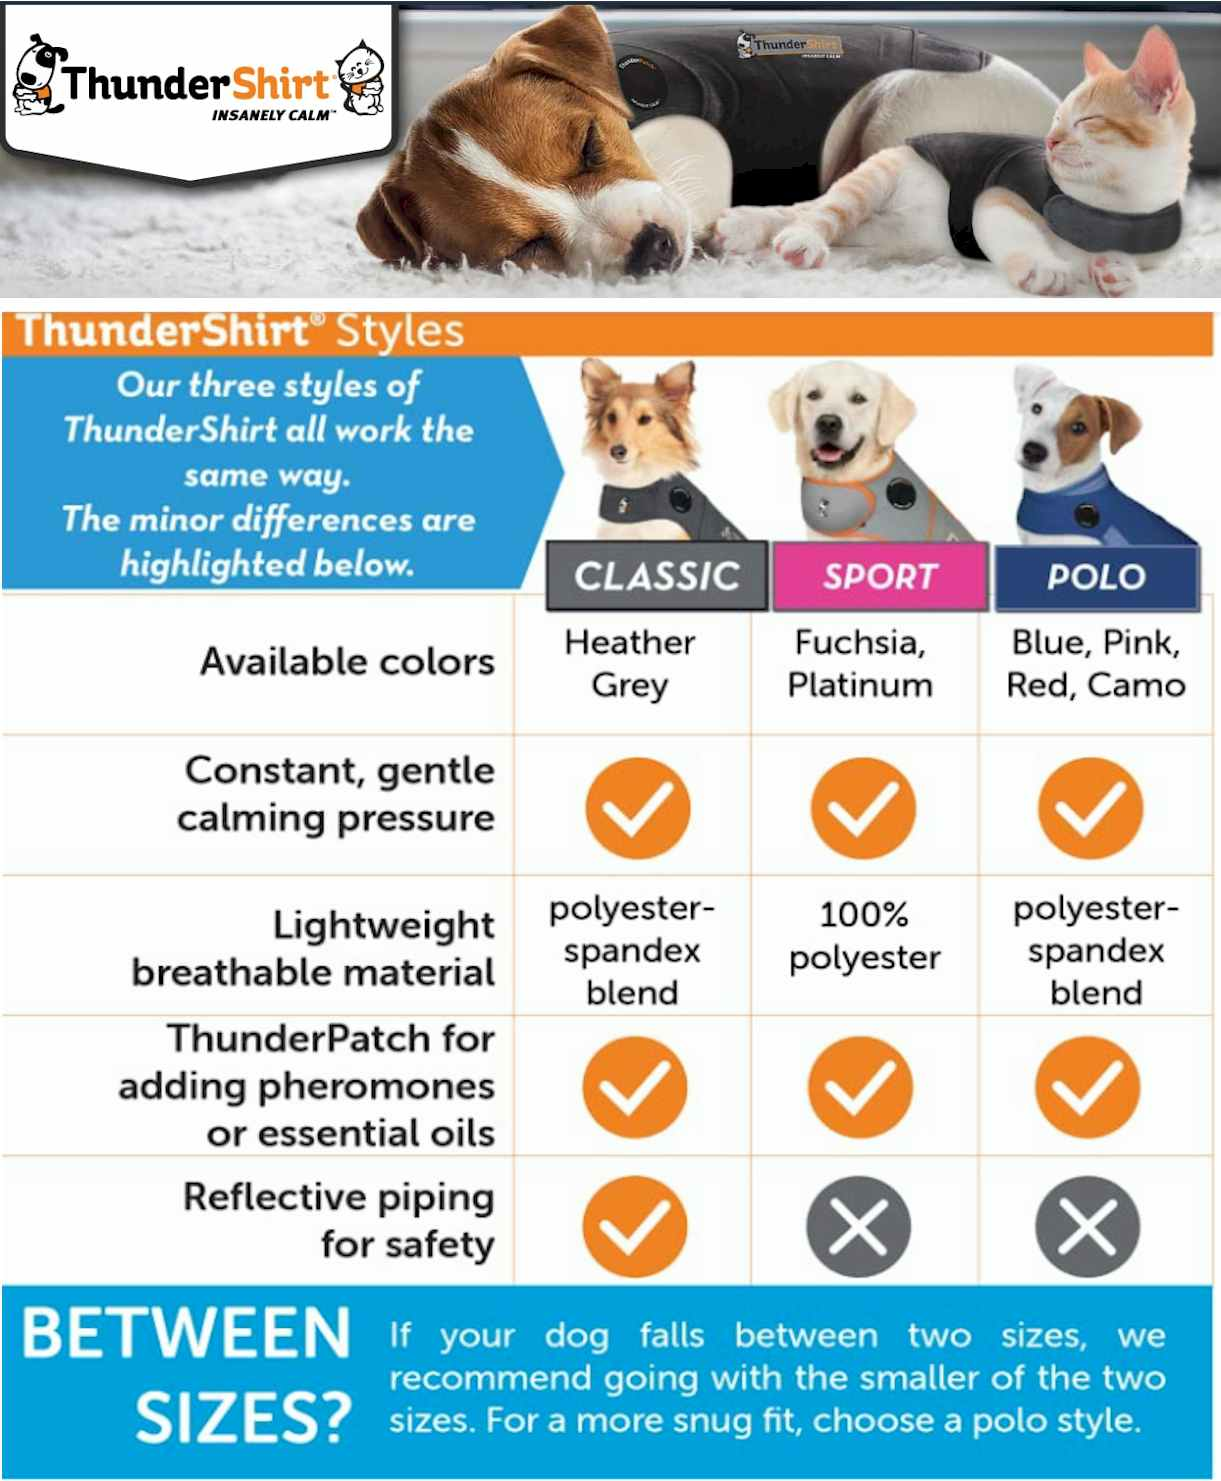 Thundershirt - Pawz - Mushers - Pets Accessories on Amazon